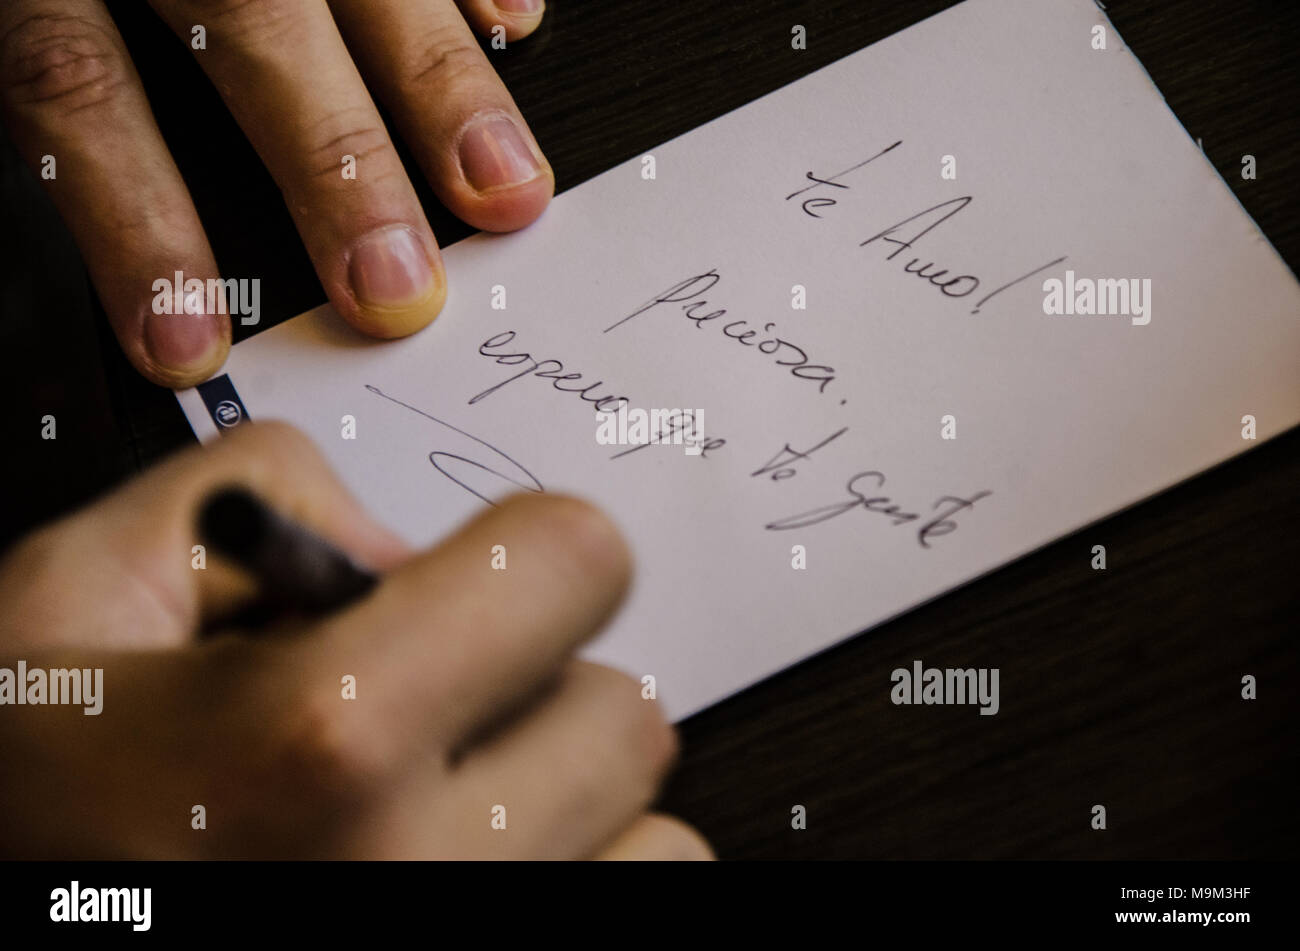 Love letter that says 'I love you beautiful' - Stock Image